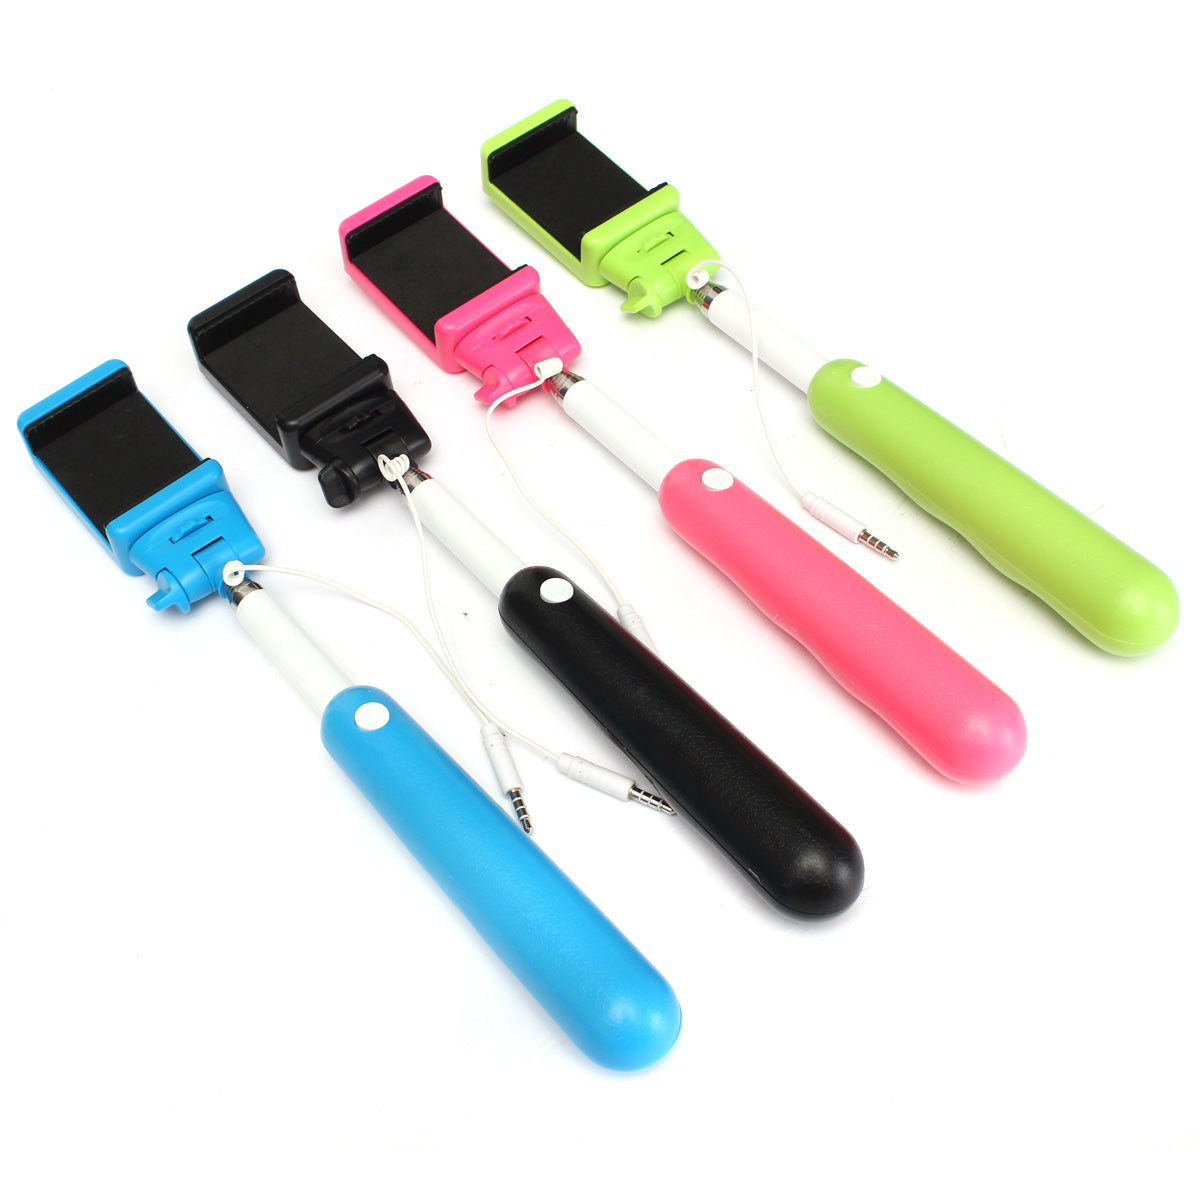 Handheld Wire Remote Control Monopod Selfie Stick With Bag For Cellphone